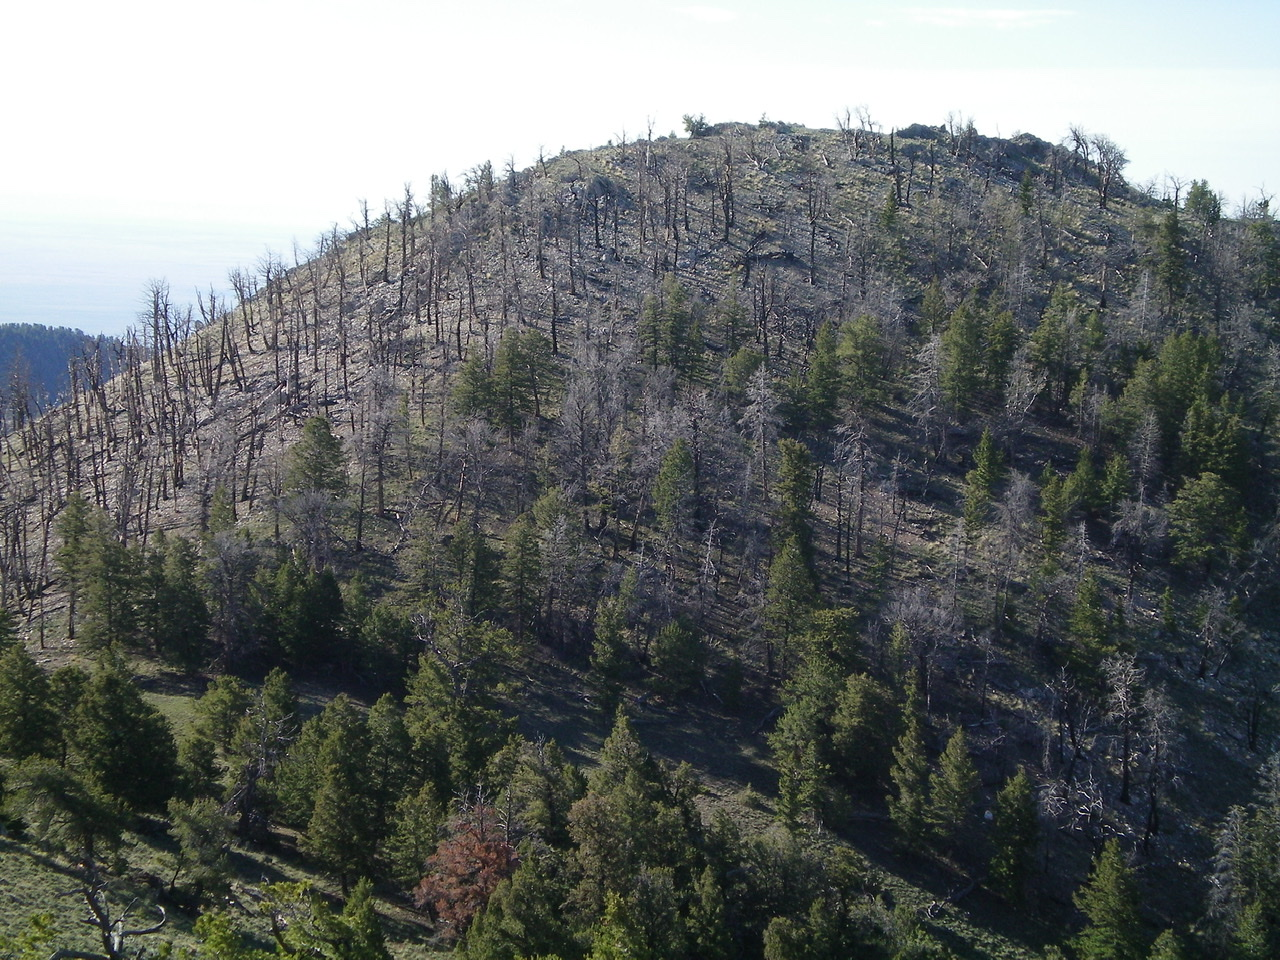 Looking south at burn-scarred Peak 9044 from Point 9004. Livingston Douglas Photo